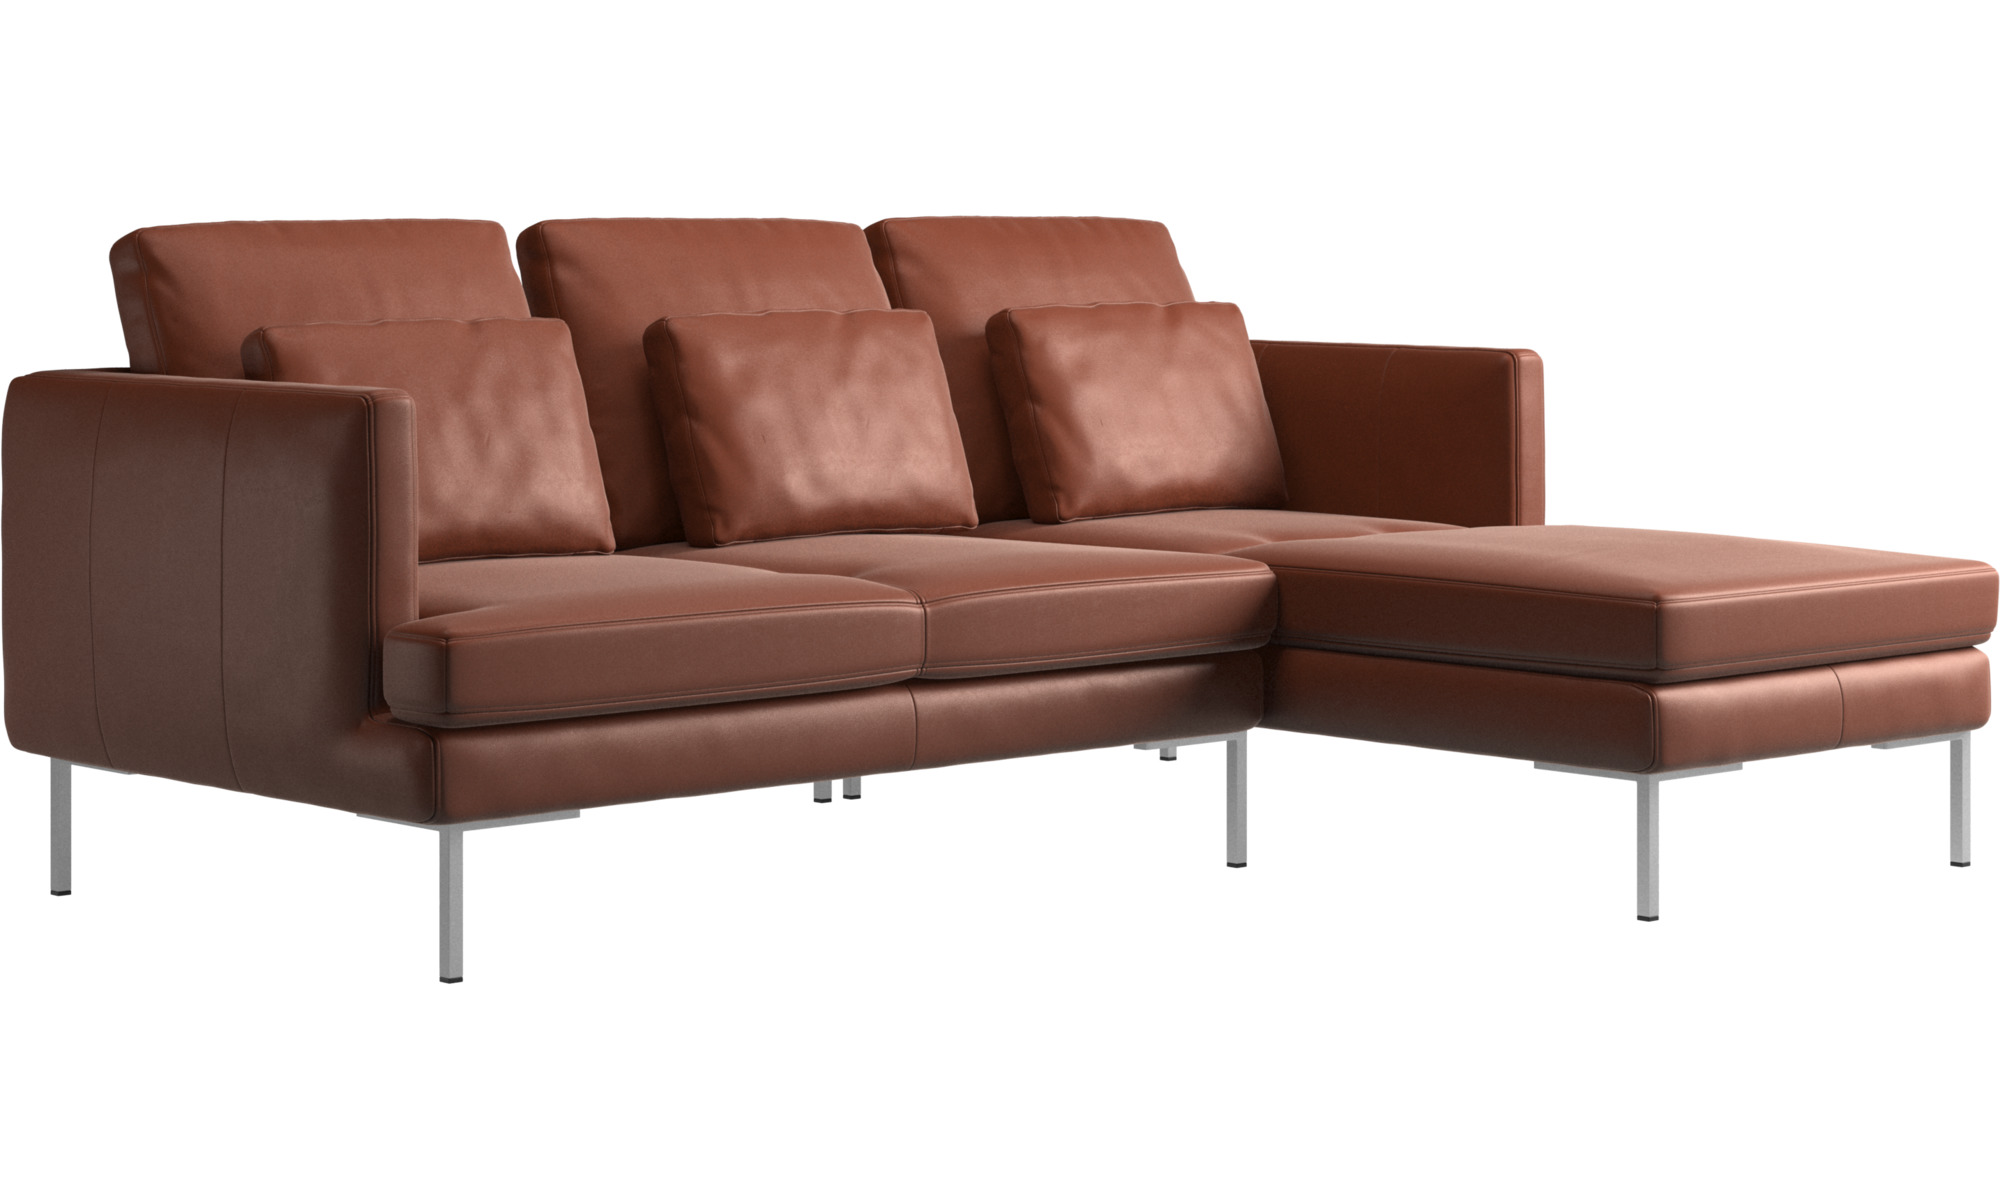 istra 2 sofa with resting unit